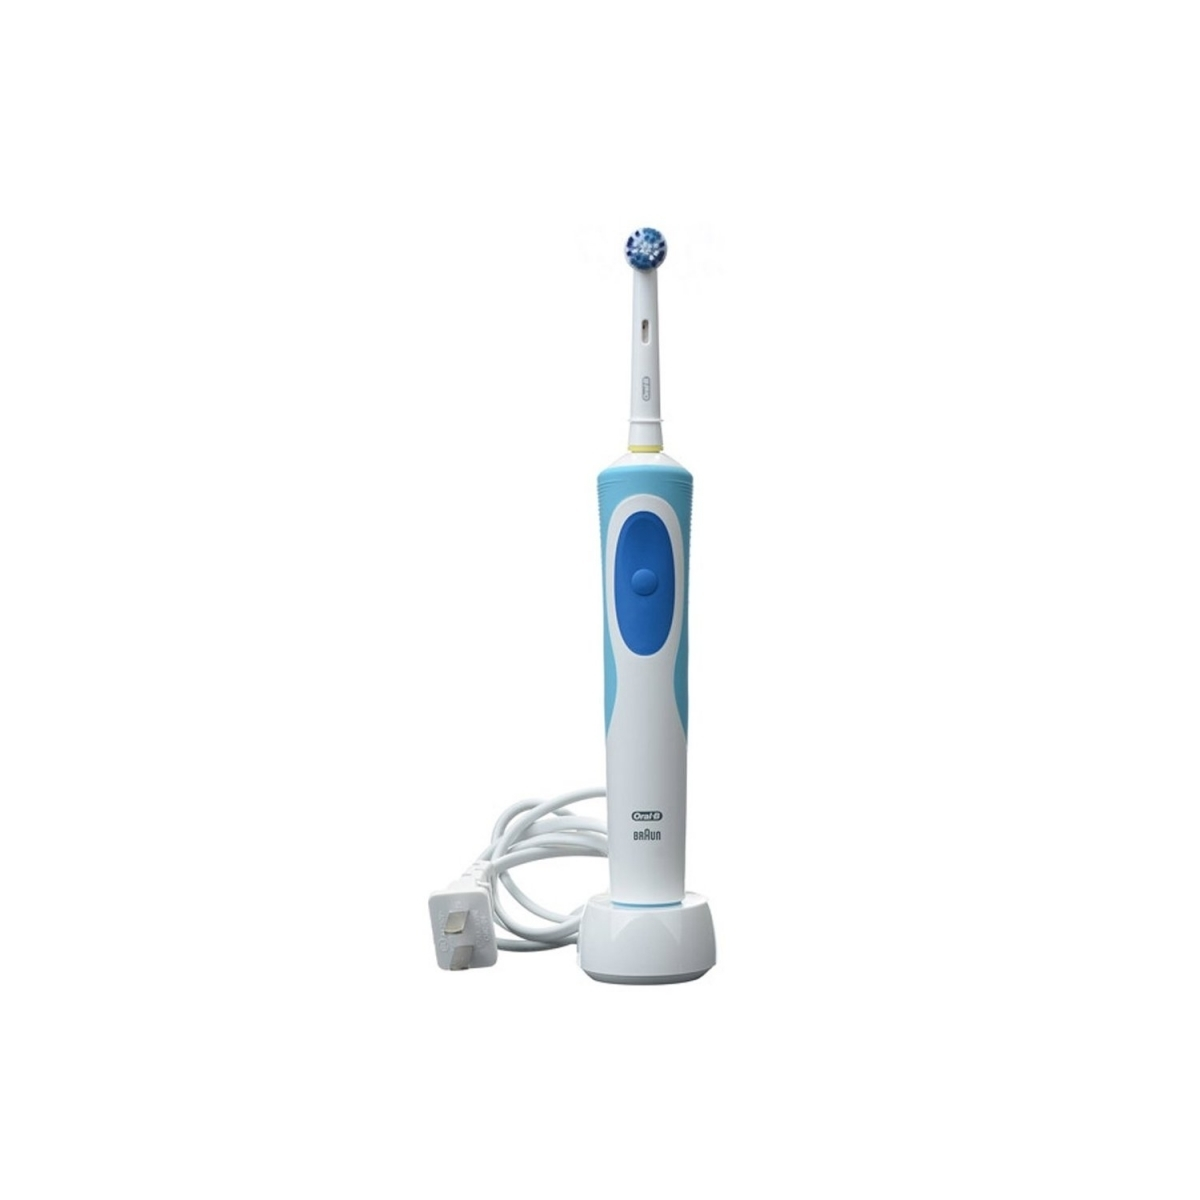 Best Electric Toothbrush Brands. When it comes to electric toothbrush brands, the battle truly comes down to Oral-B VS Sonicare. Yes there are some other brands out there but we will be ignoring them in this guide, making it a battle of the titans!